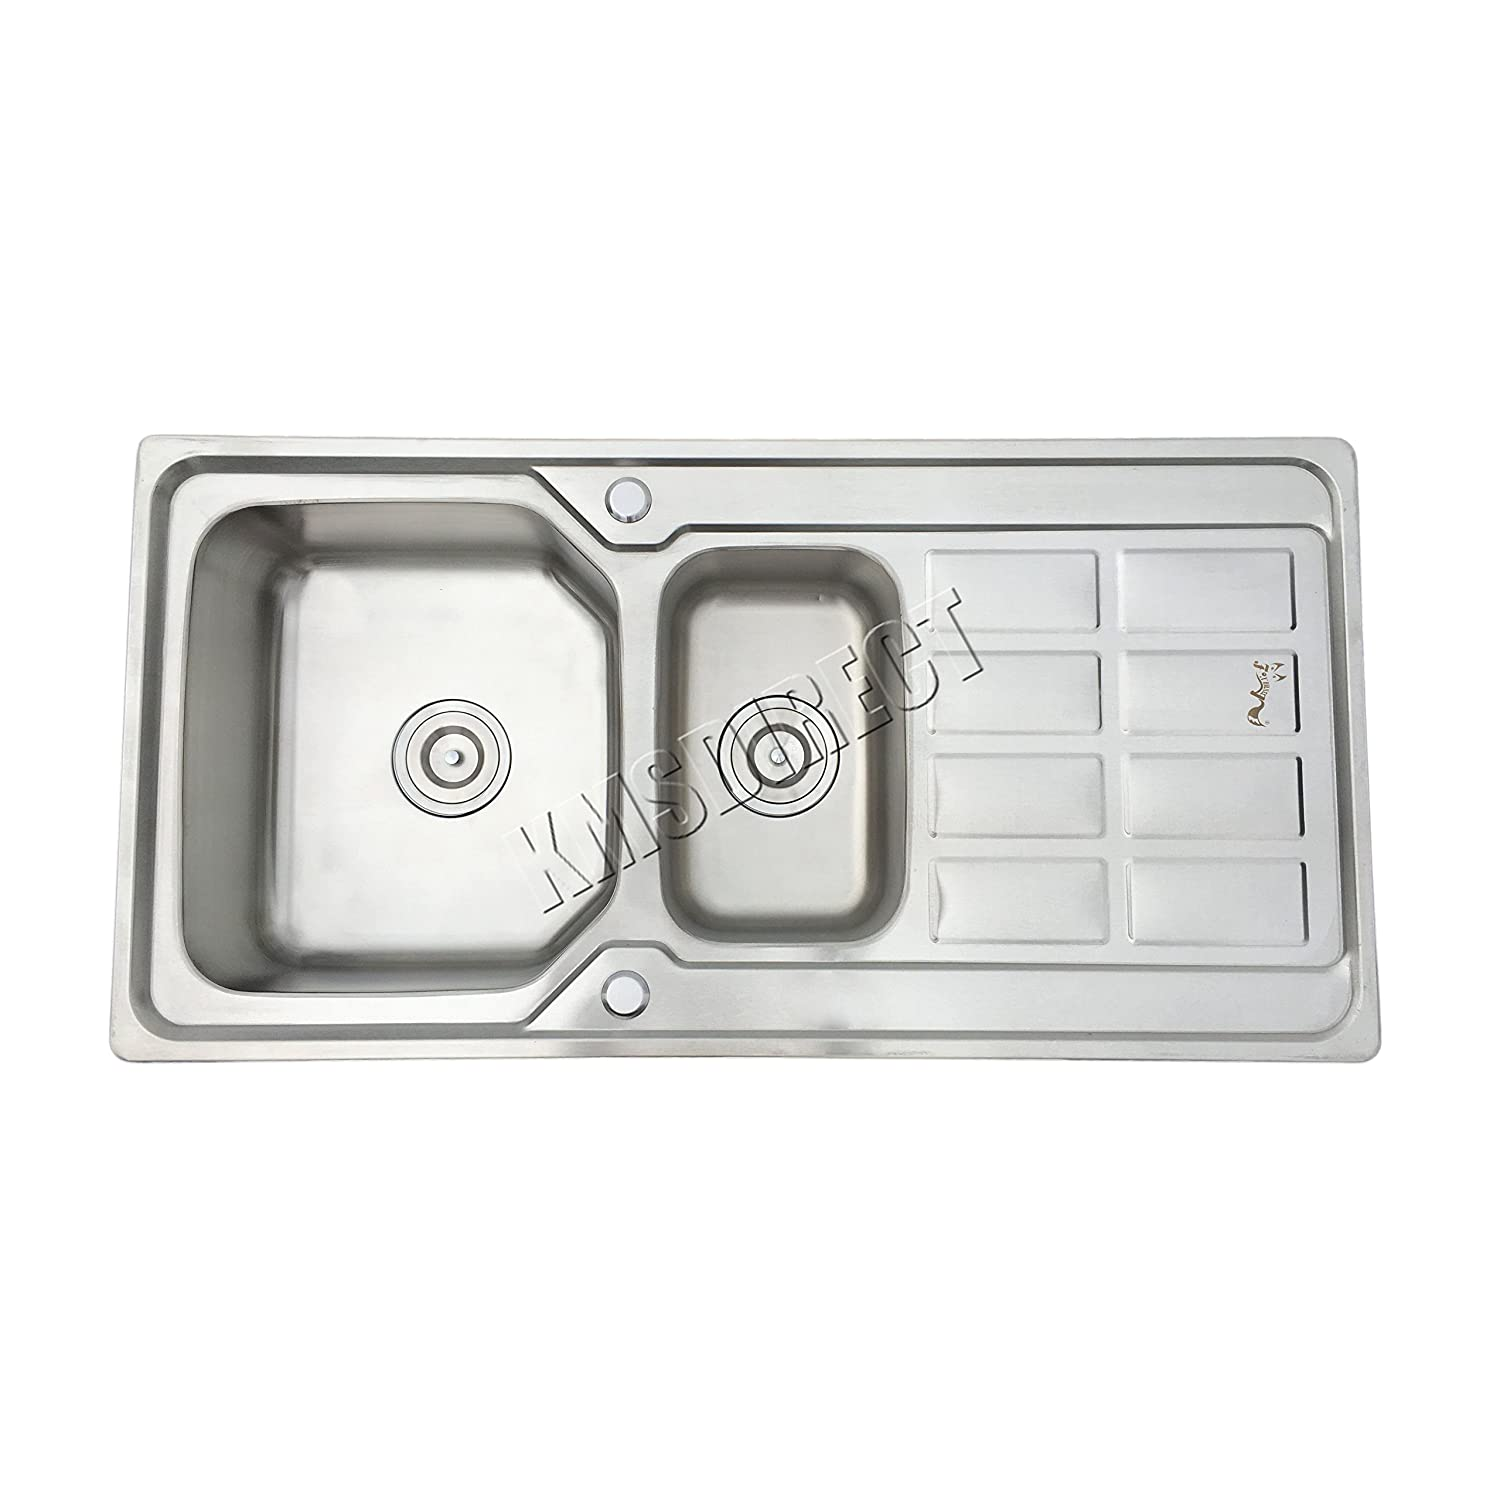 WestWood Double 1.5 Bowl Stainless Steel Kitchen Sink With Complete ...